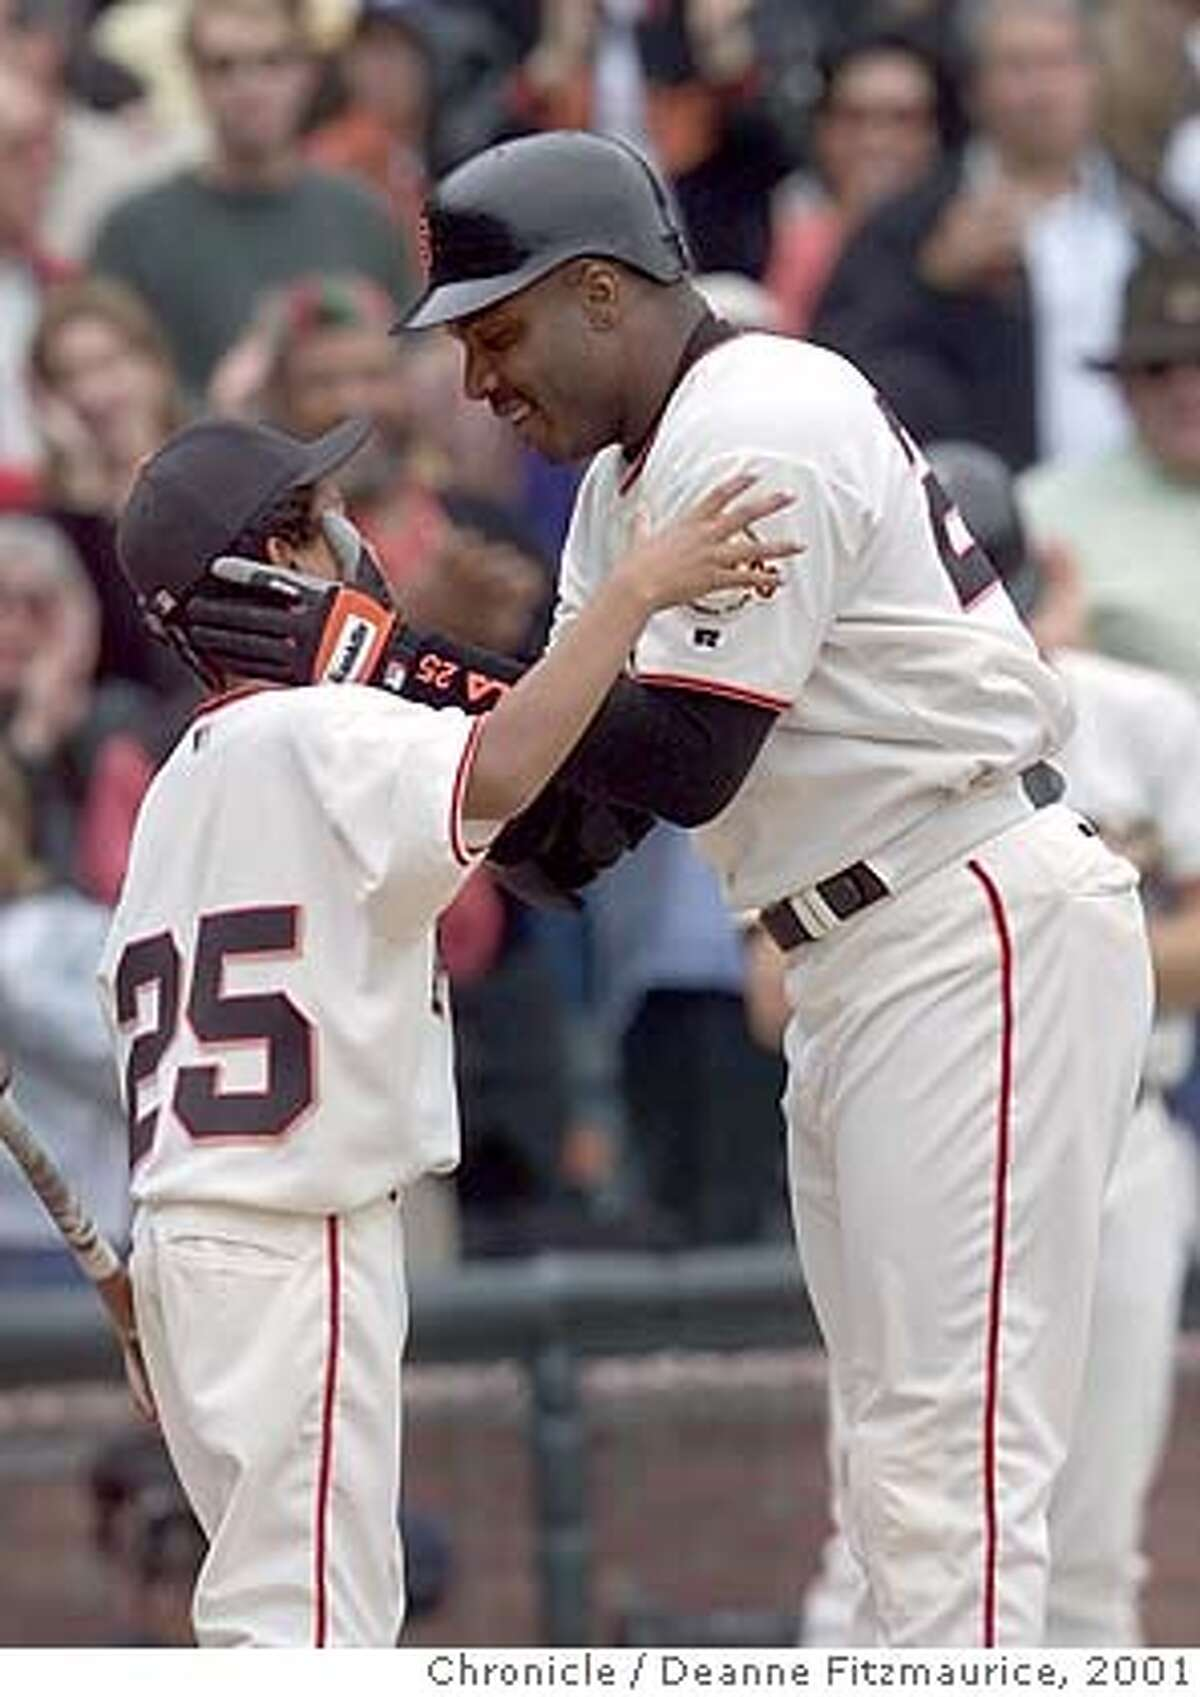 GIANTS1-C-07OCT01-SP-DF Barry Bonds kisses his son Nikolai,11, after crossing the plate with homerun #73 setting a new season record. CHRONICLE PHOTO BY DEANNE FITZMAURICE